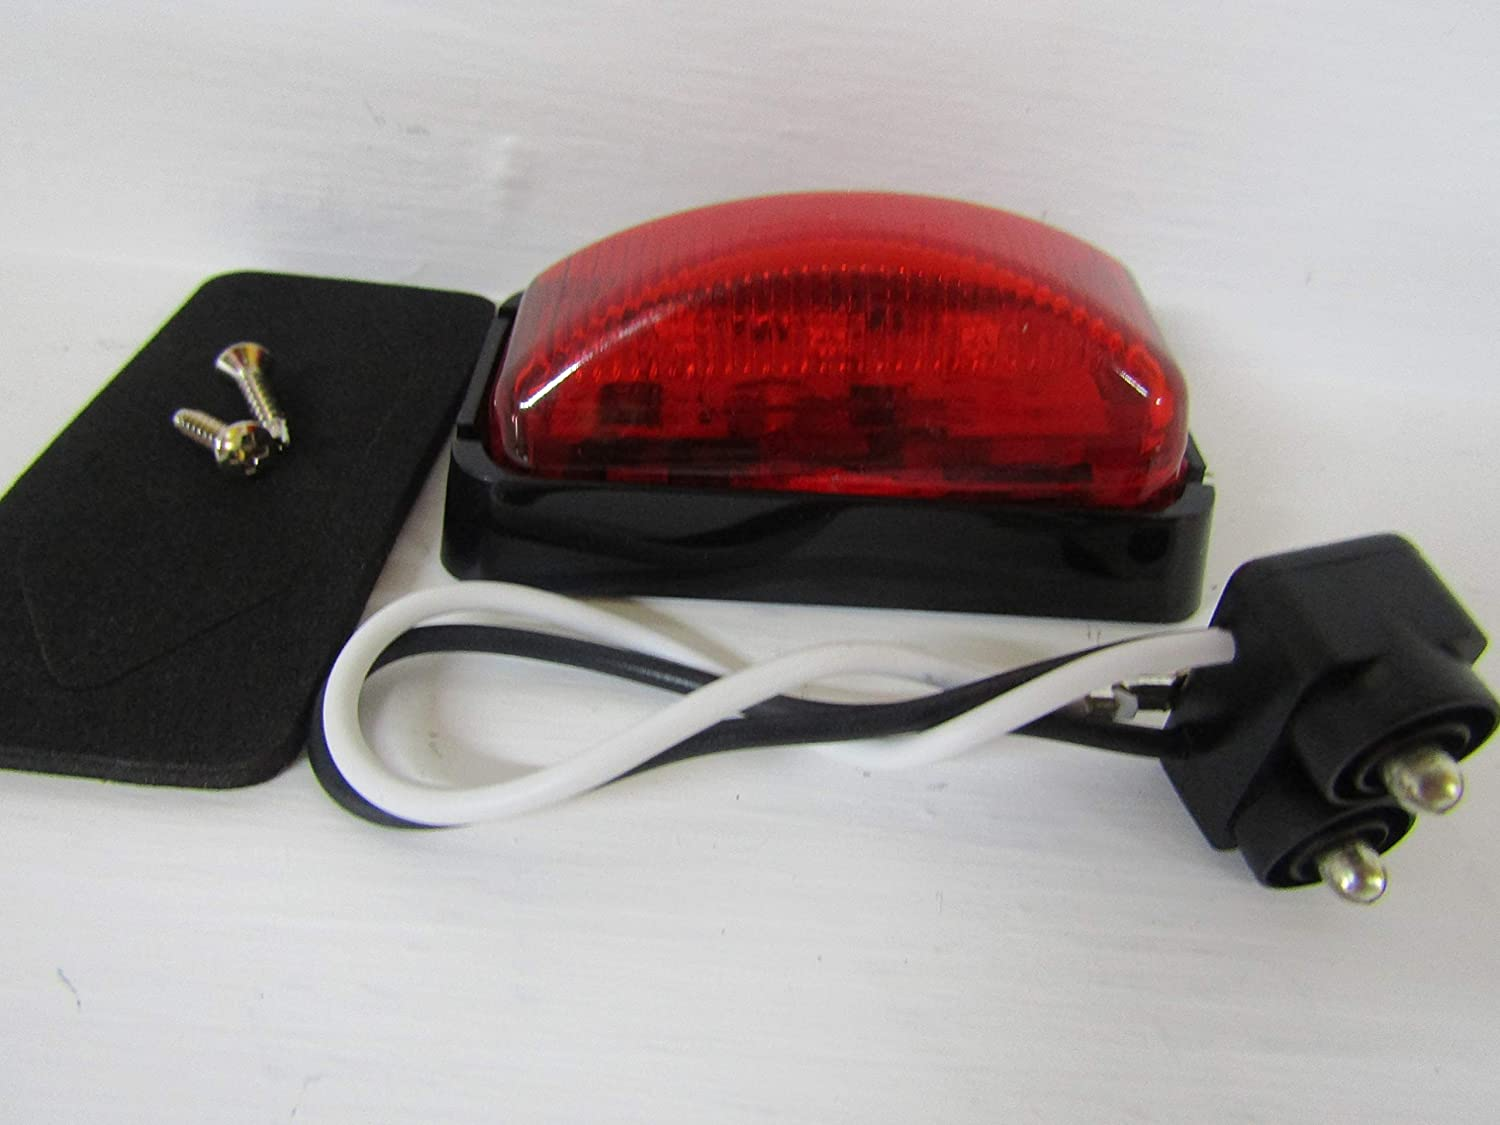 Buyers Products 2.5 Inch Red Surface Mount/Marker Light Kit with 3 LEDs (PL-10 Connection, Includes Bracket and Plug)